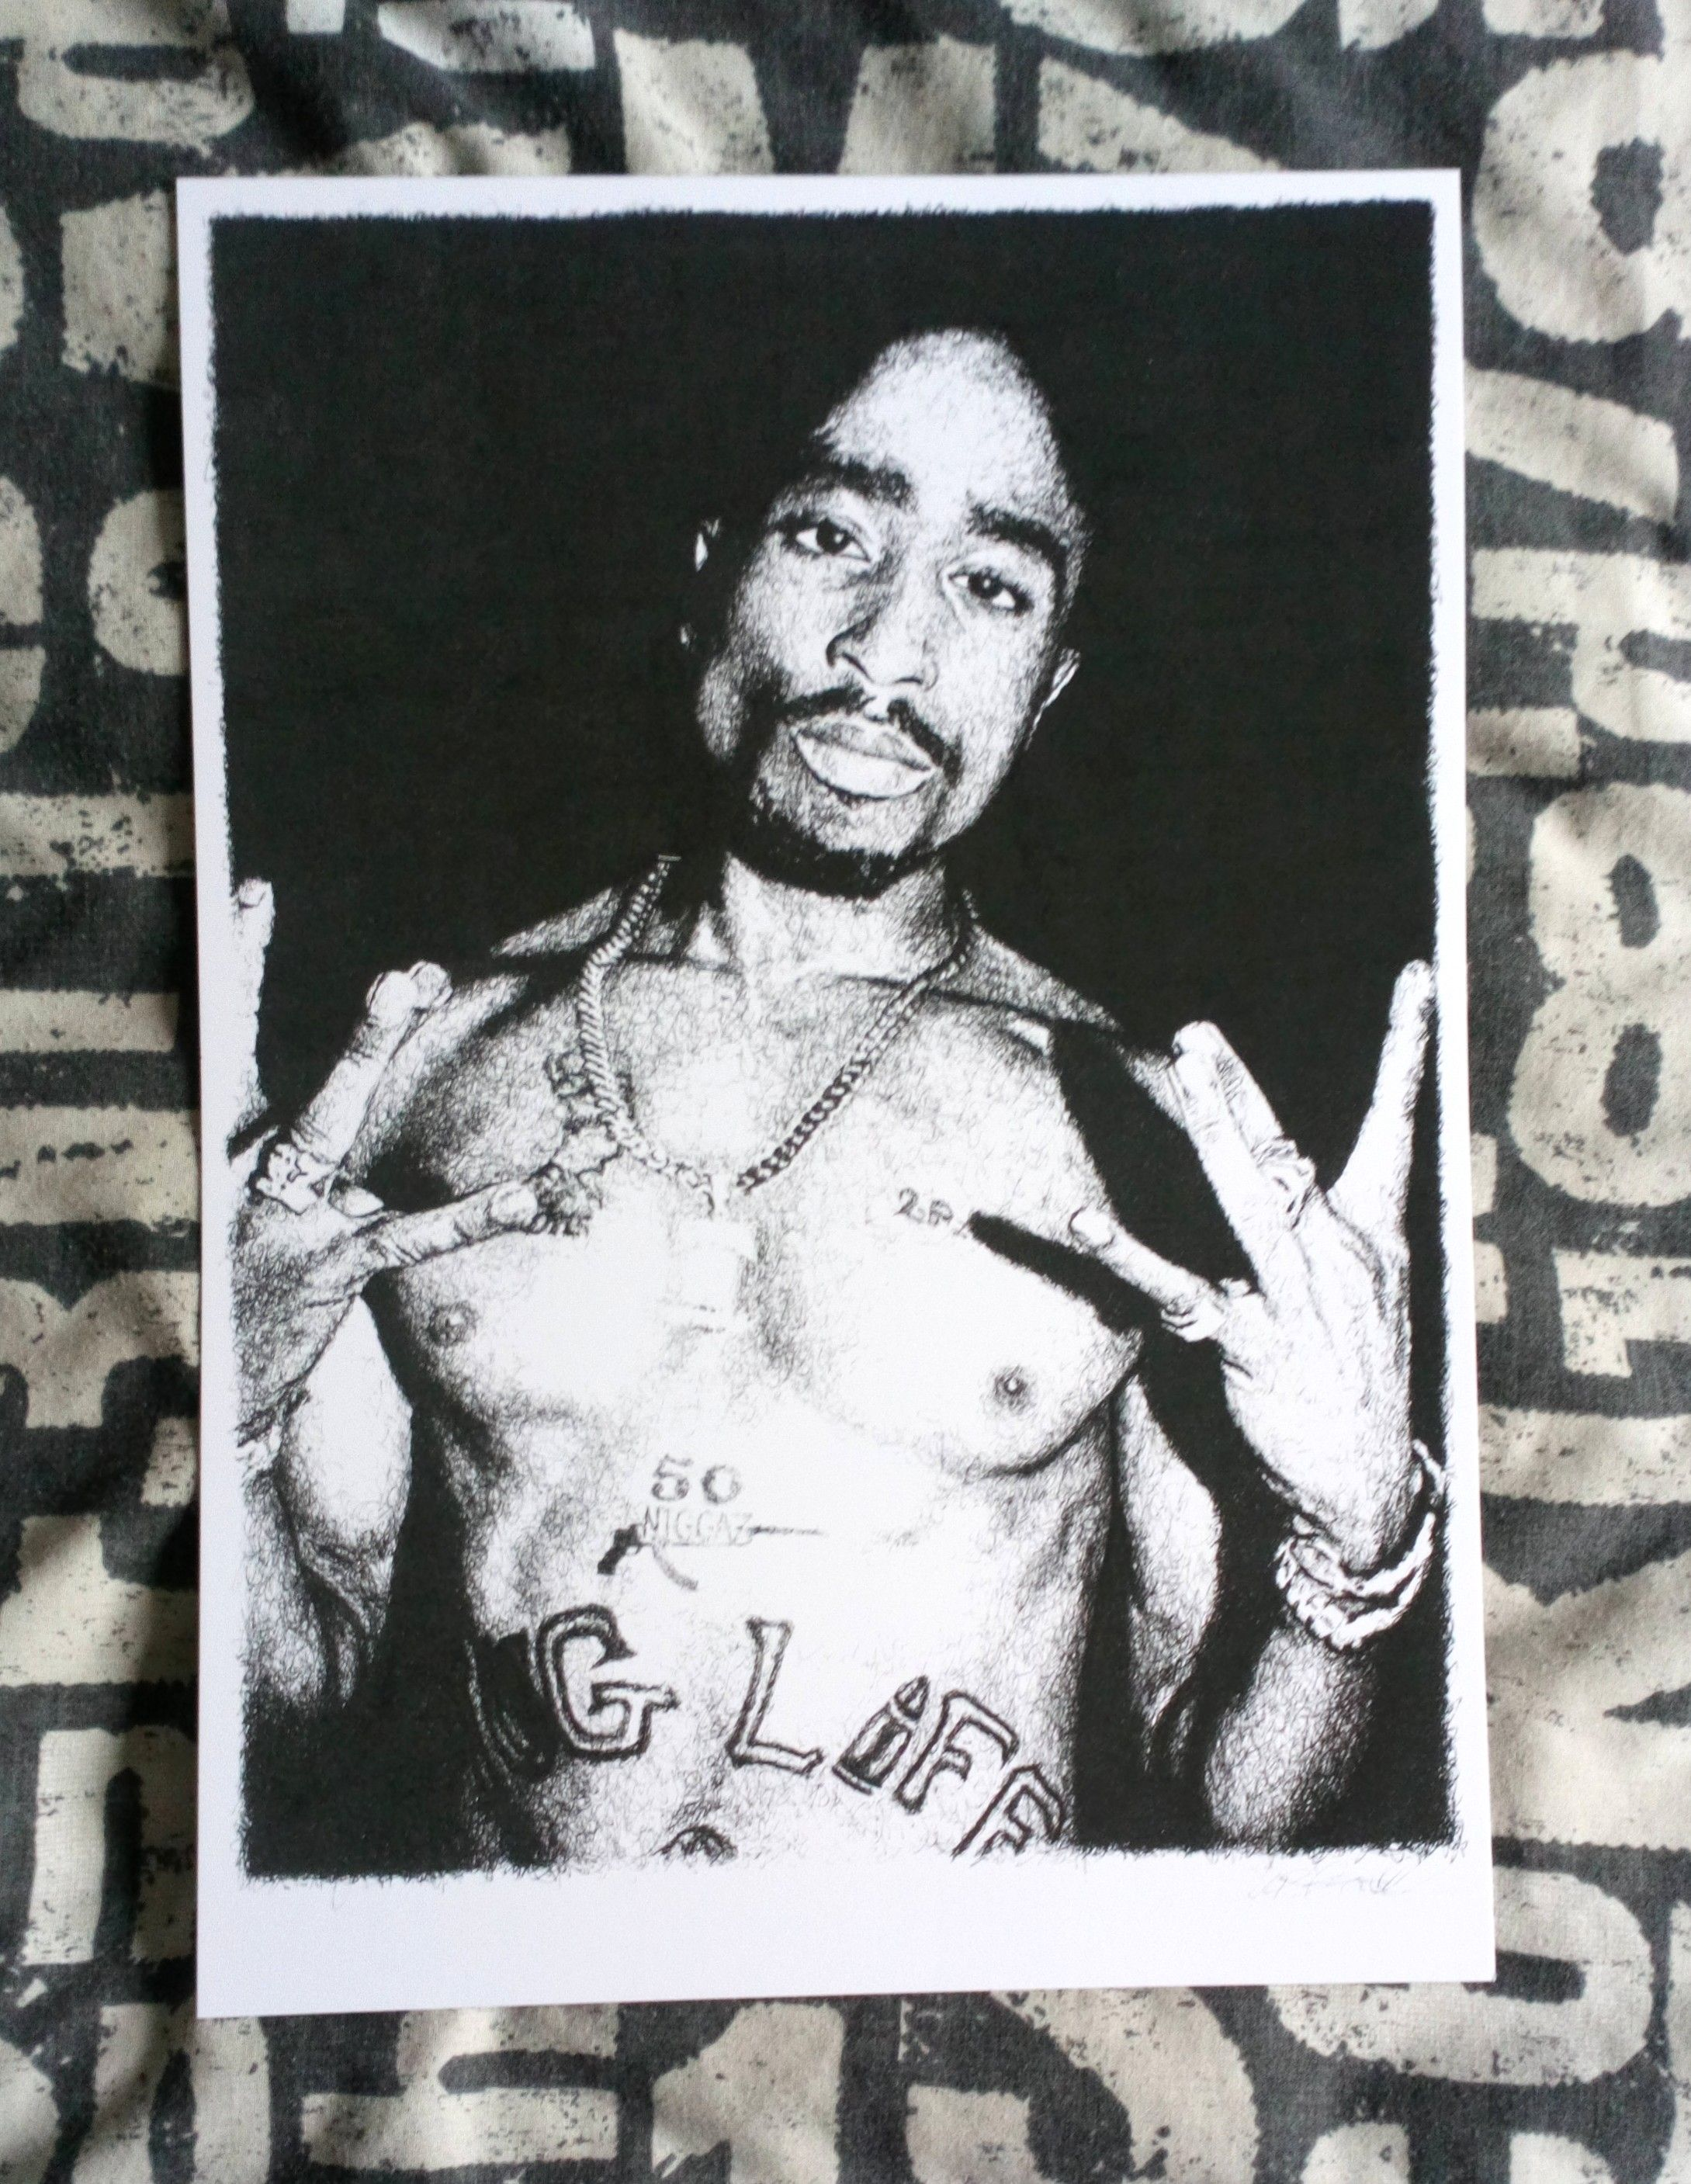 tupac 2pac print hiphop | hiphop dancer | hiphop wallpapers | hiphop